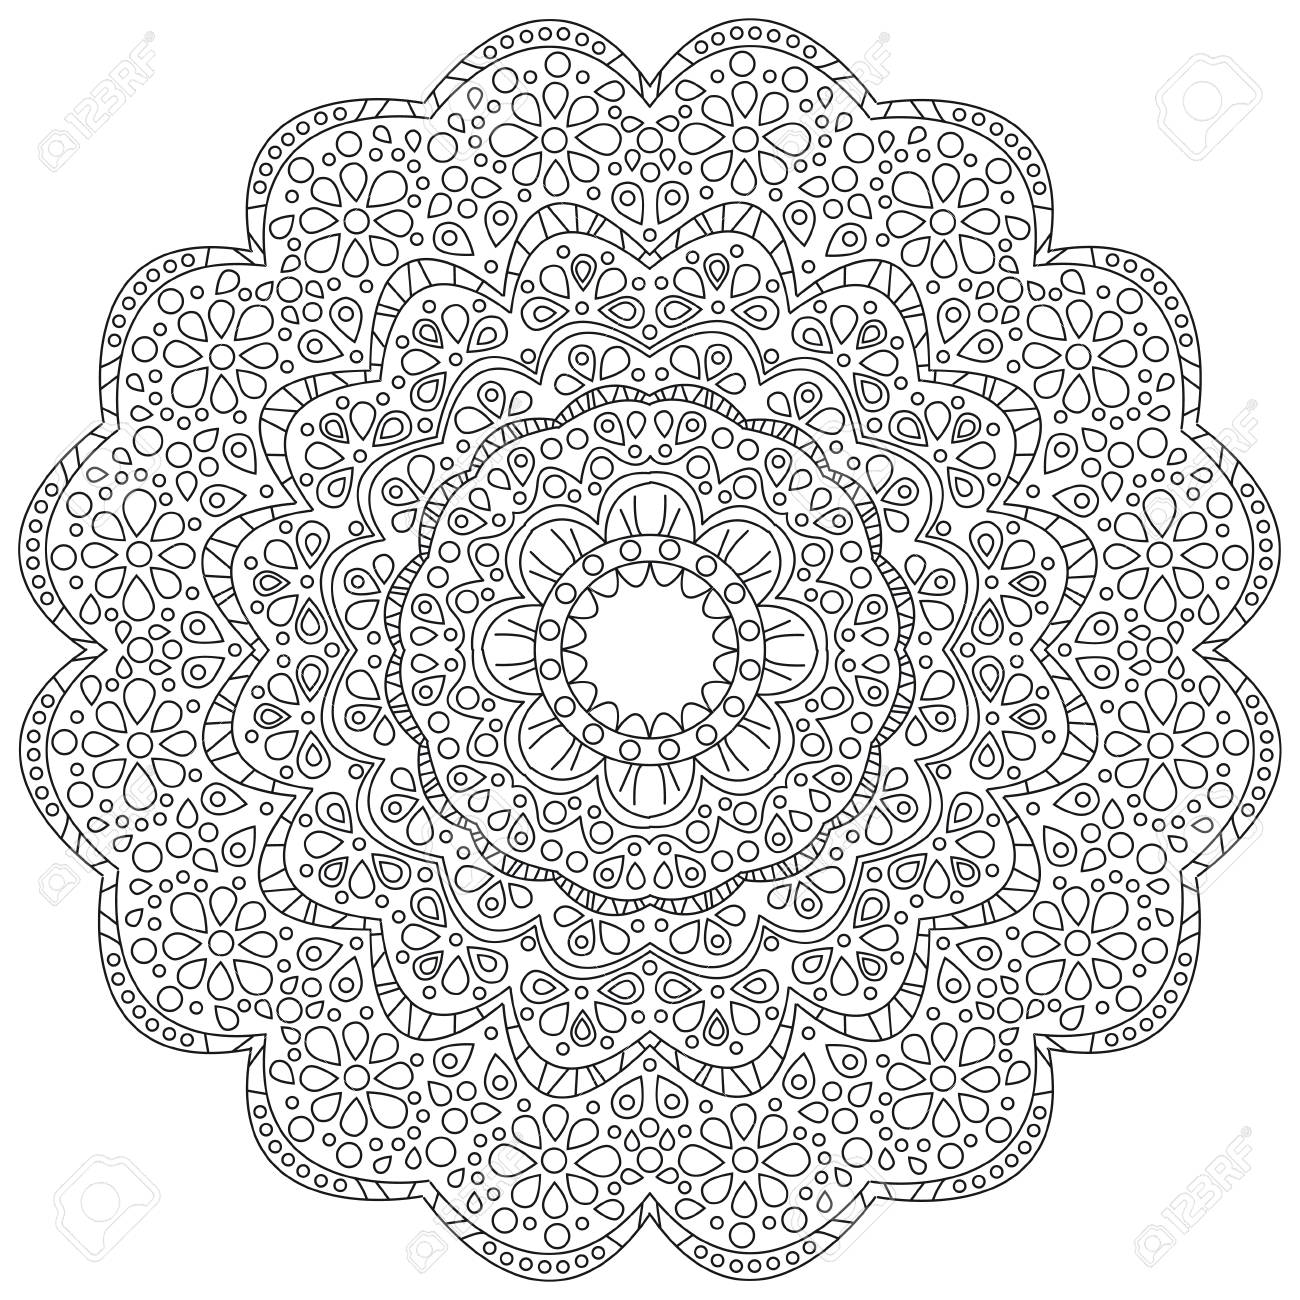 Vector illustration of a black and white floral background - 88185328